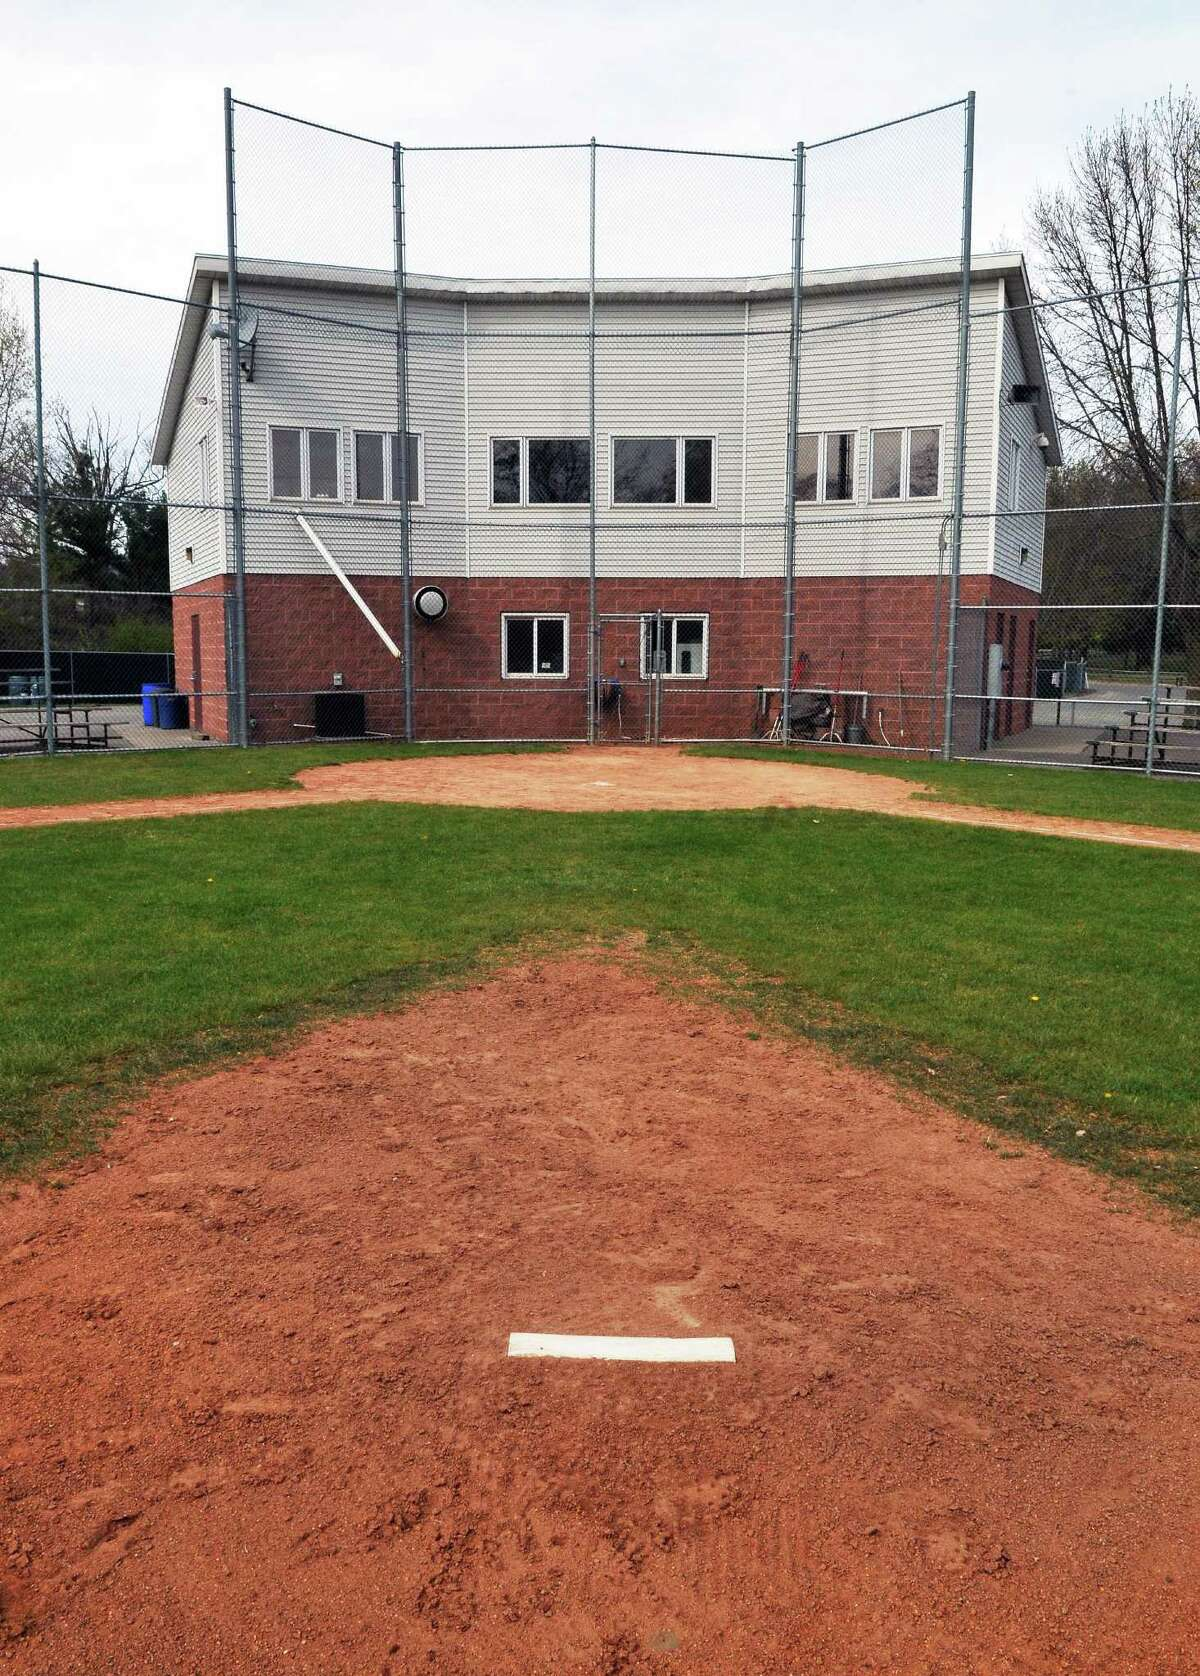 View from the pitcher's mound at Cook Park little league